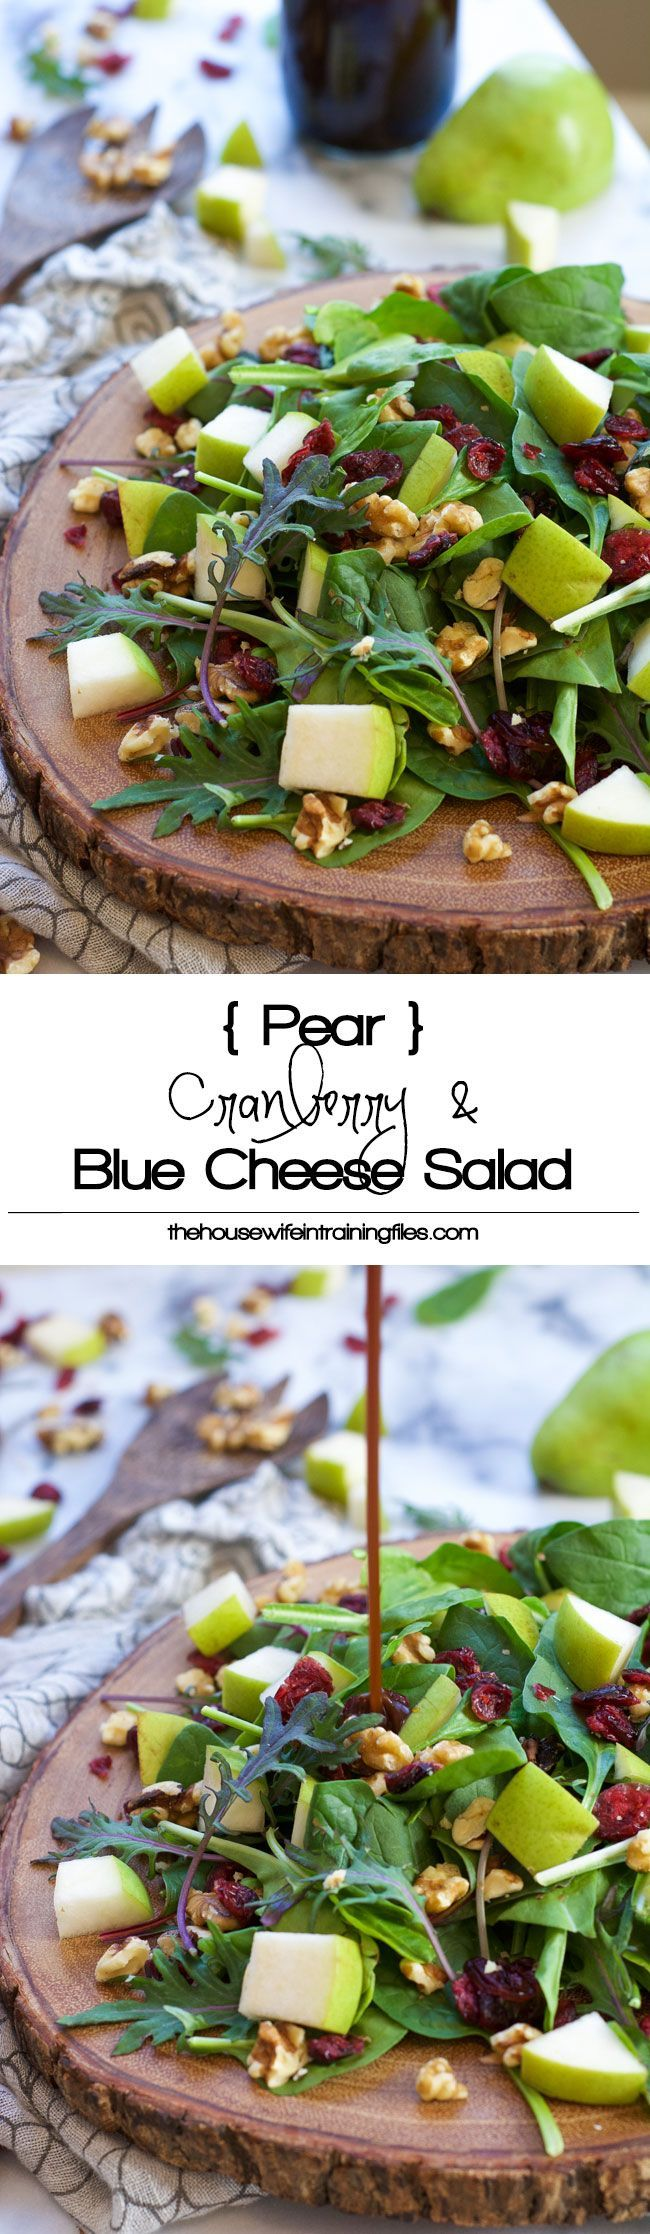 Pear Spinach Salad, Recipes, Dressing, Fall, Healthy, Easy, Autumn, Best, Cranberry, Simple, Sweet, Green, Gluten Free, Lunches